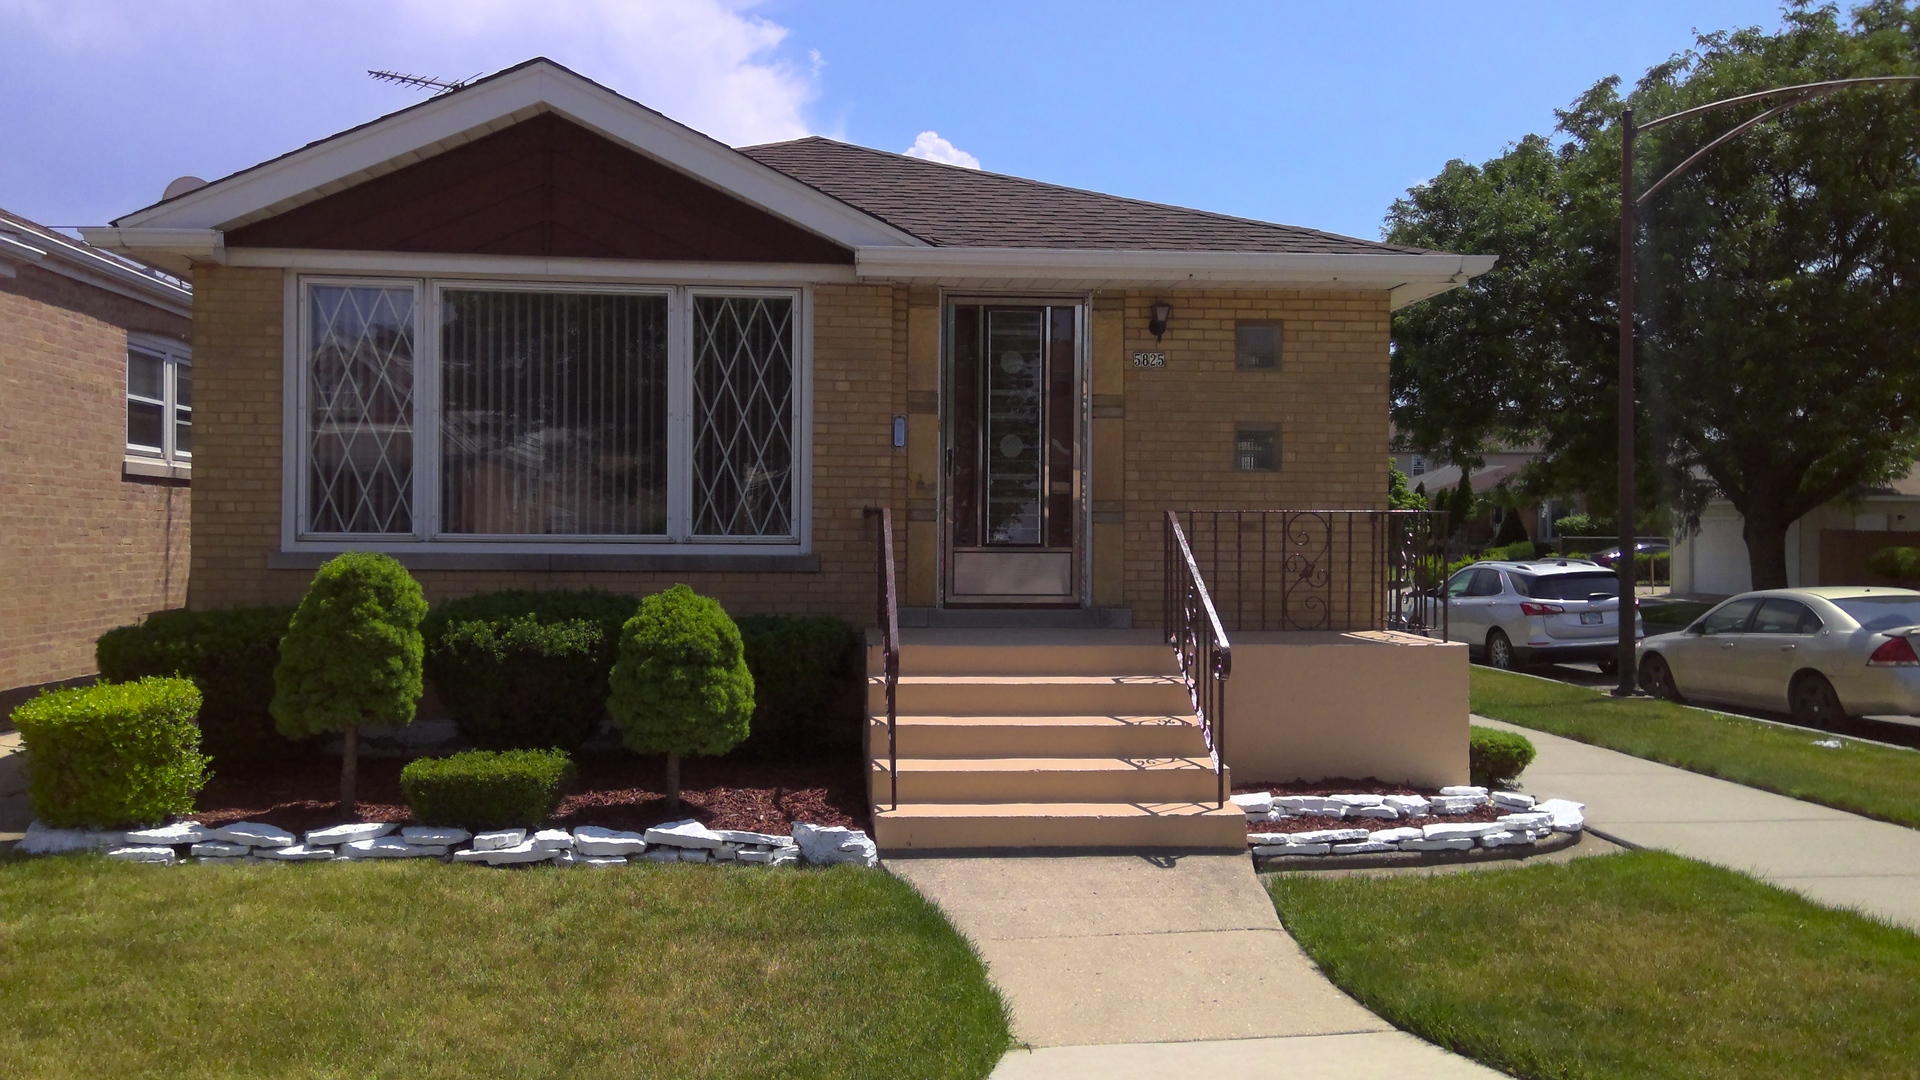 Photo of 5825 W 55th Street, Chicago, IL 60638